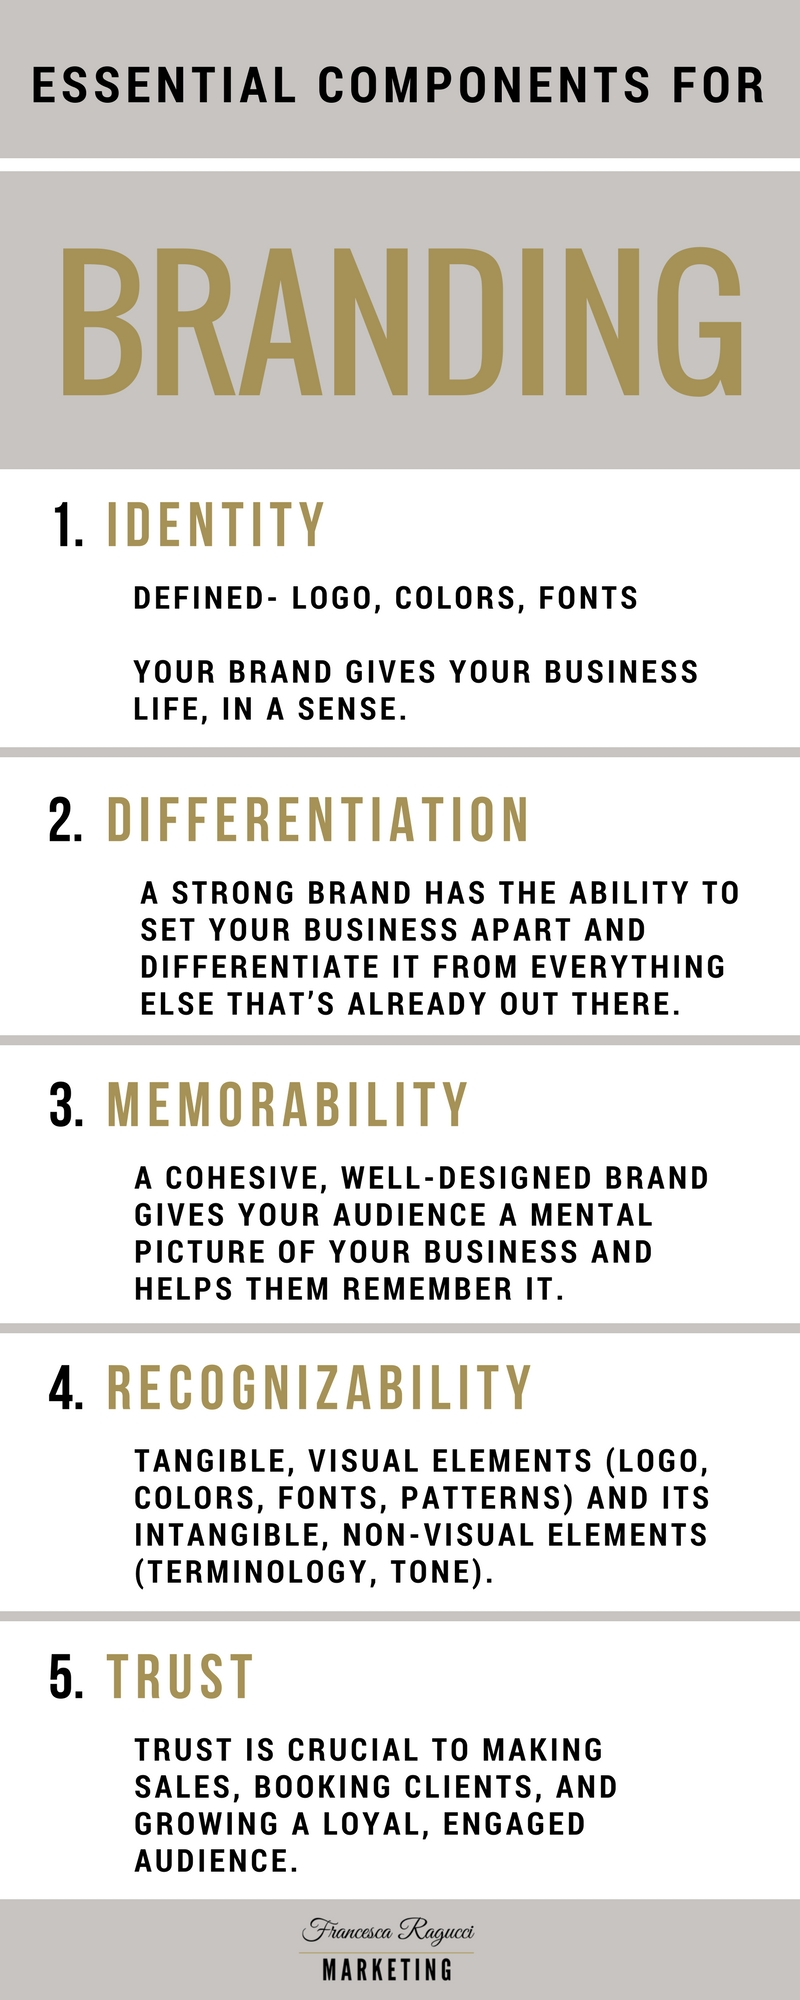 essential components for branding.jpg